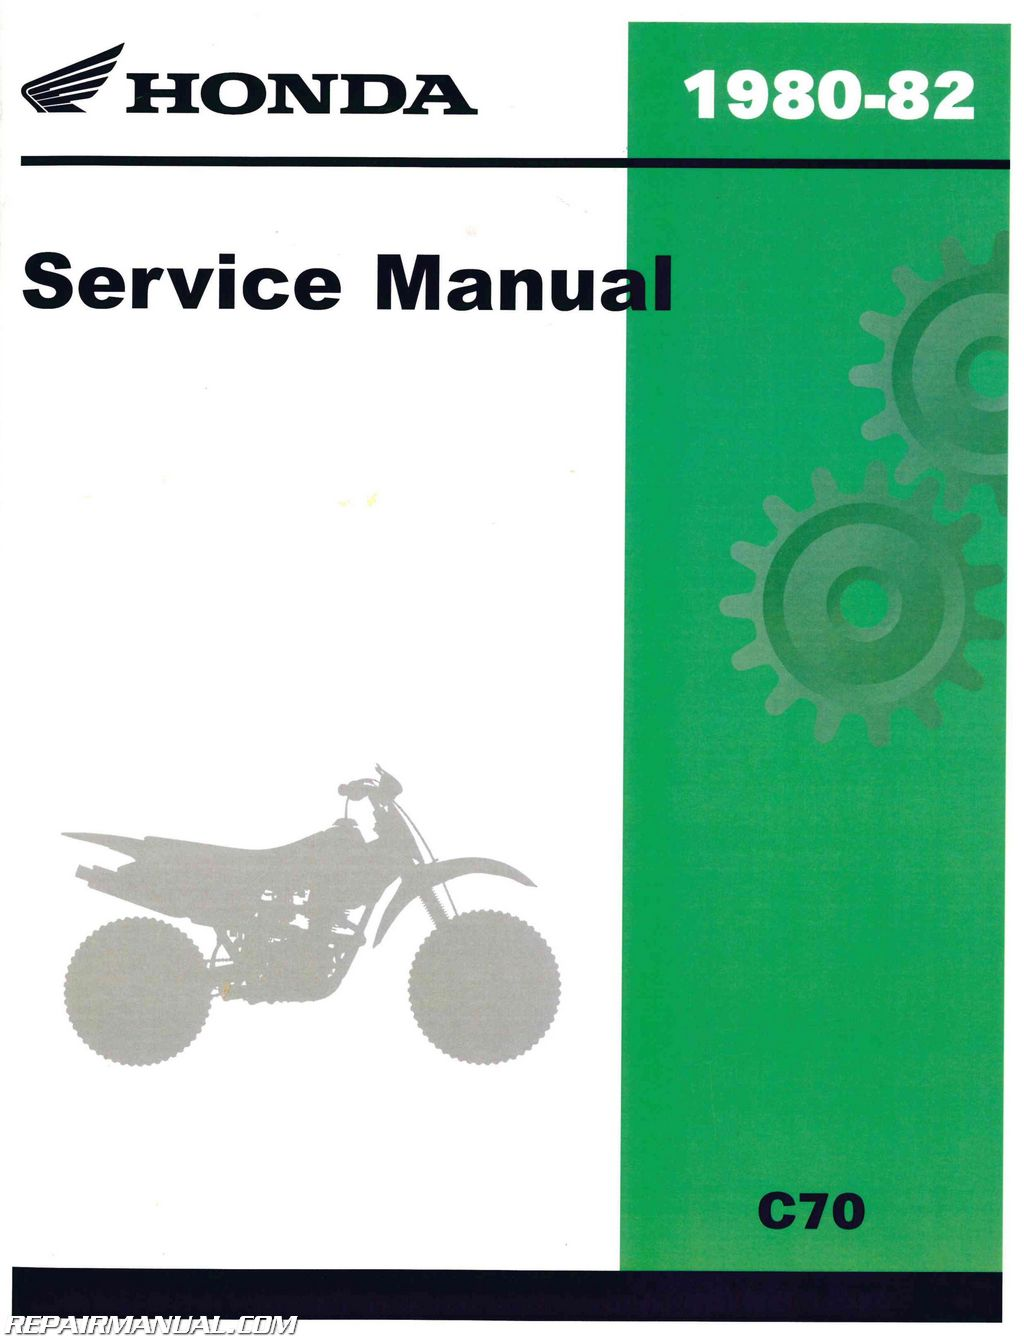 1980 1982 honda c70 scooter workshop service repair manual rh repairmanual com honda c70 service manual honda c70 service manual